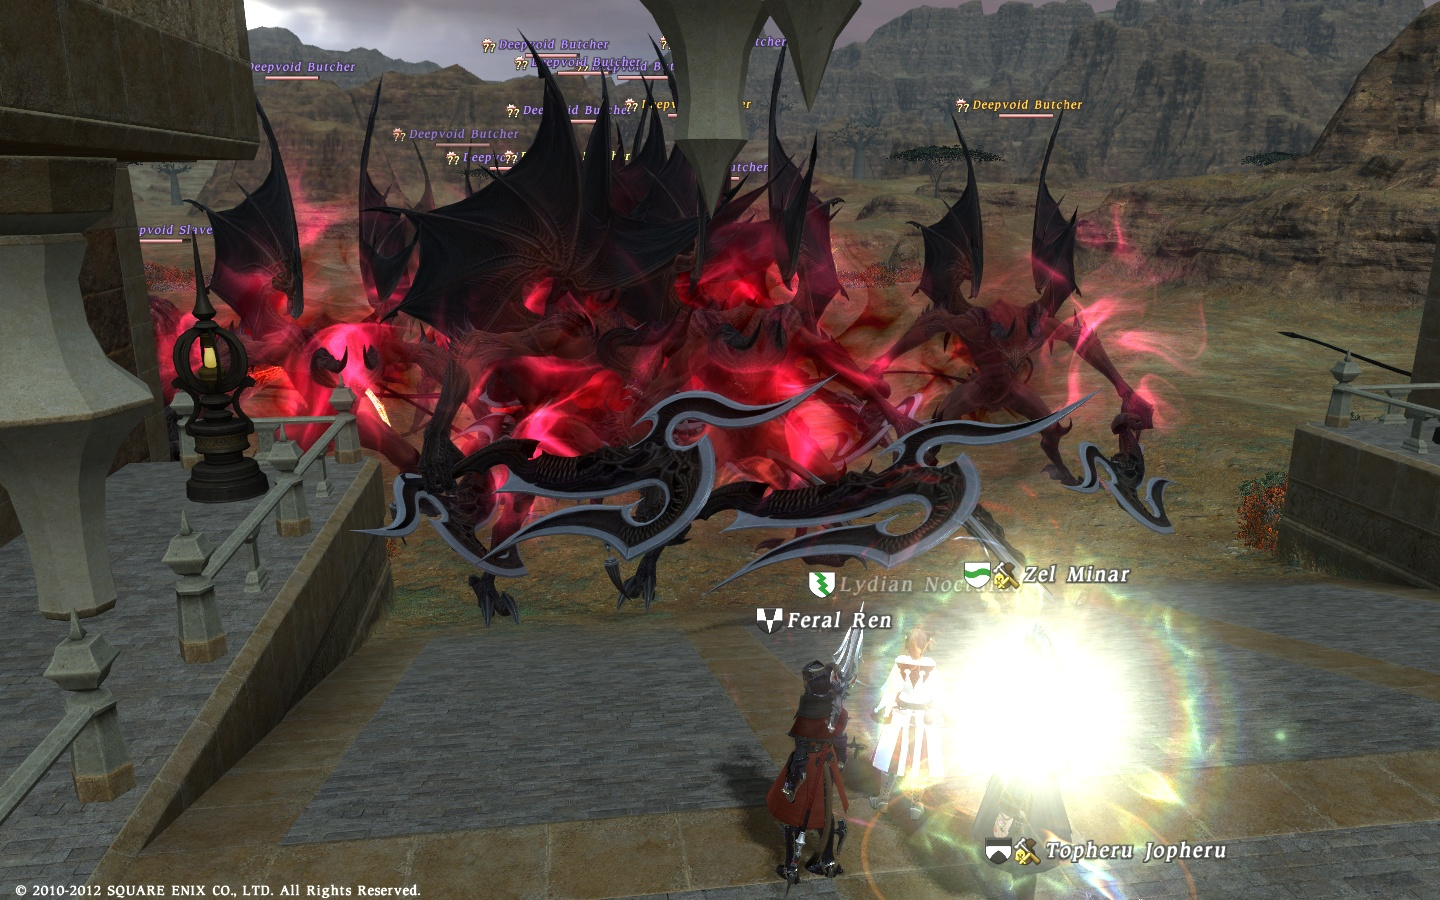 nep ffxiv nothing logged something uldah sure just bring bothered waiting bunch people cant enough crystals find around except hopped happened thanks making there wasnt from producer xxxvii 10262012 some treasure crystal letter have random edit trove nda-flouting somewhere outside